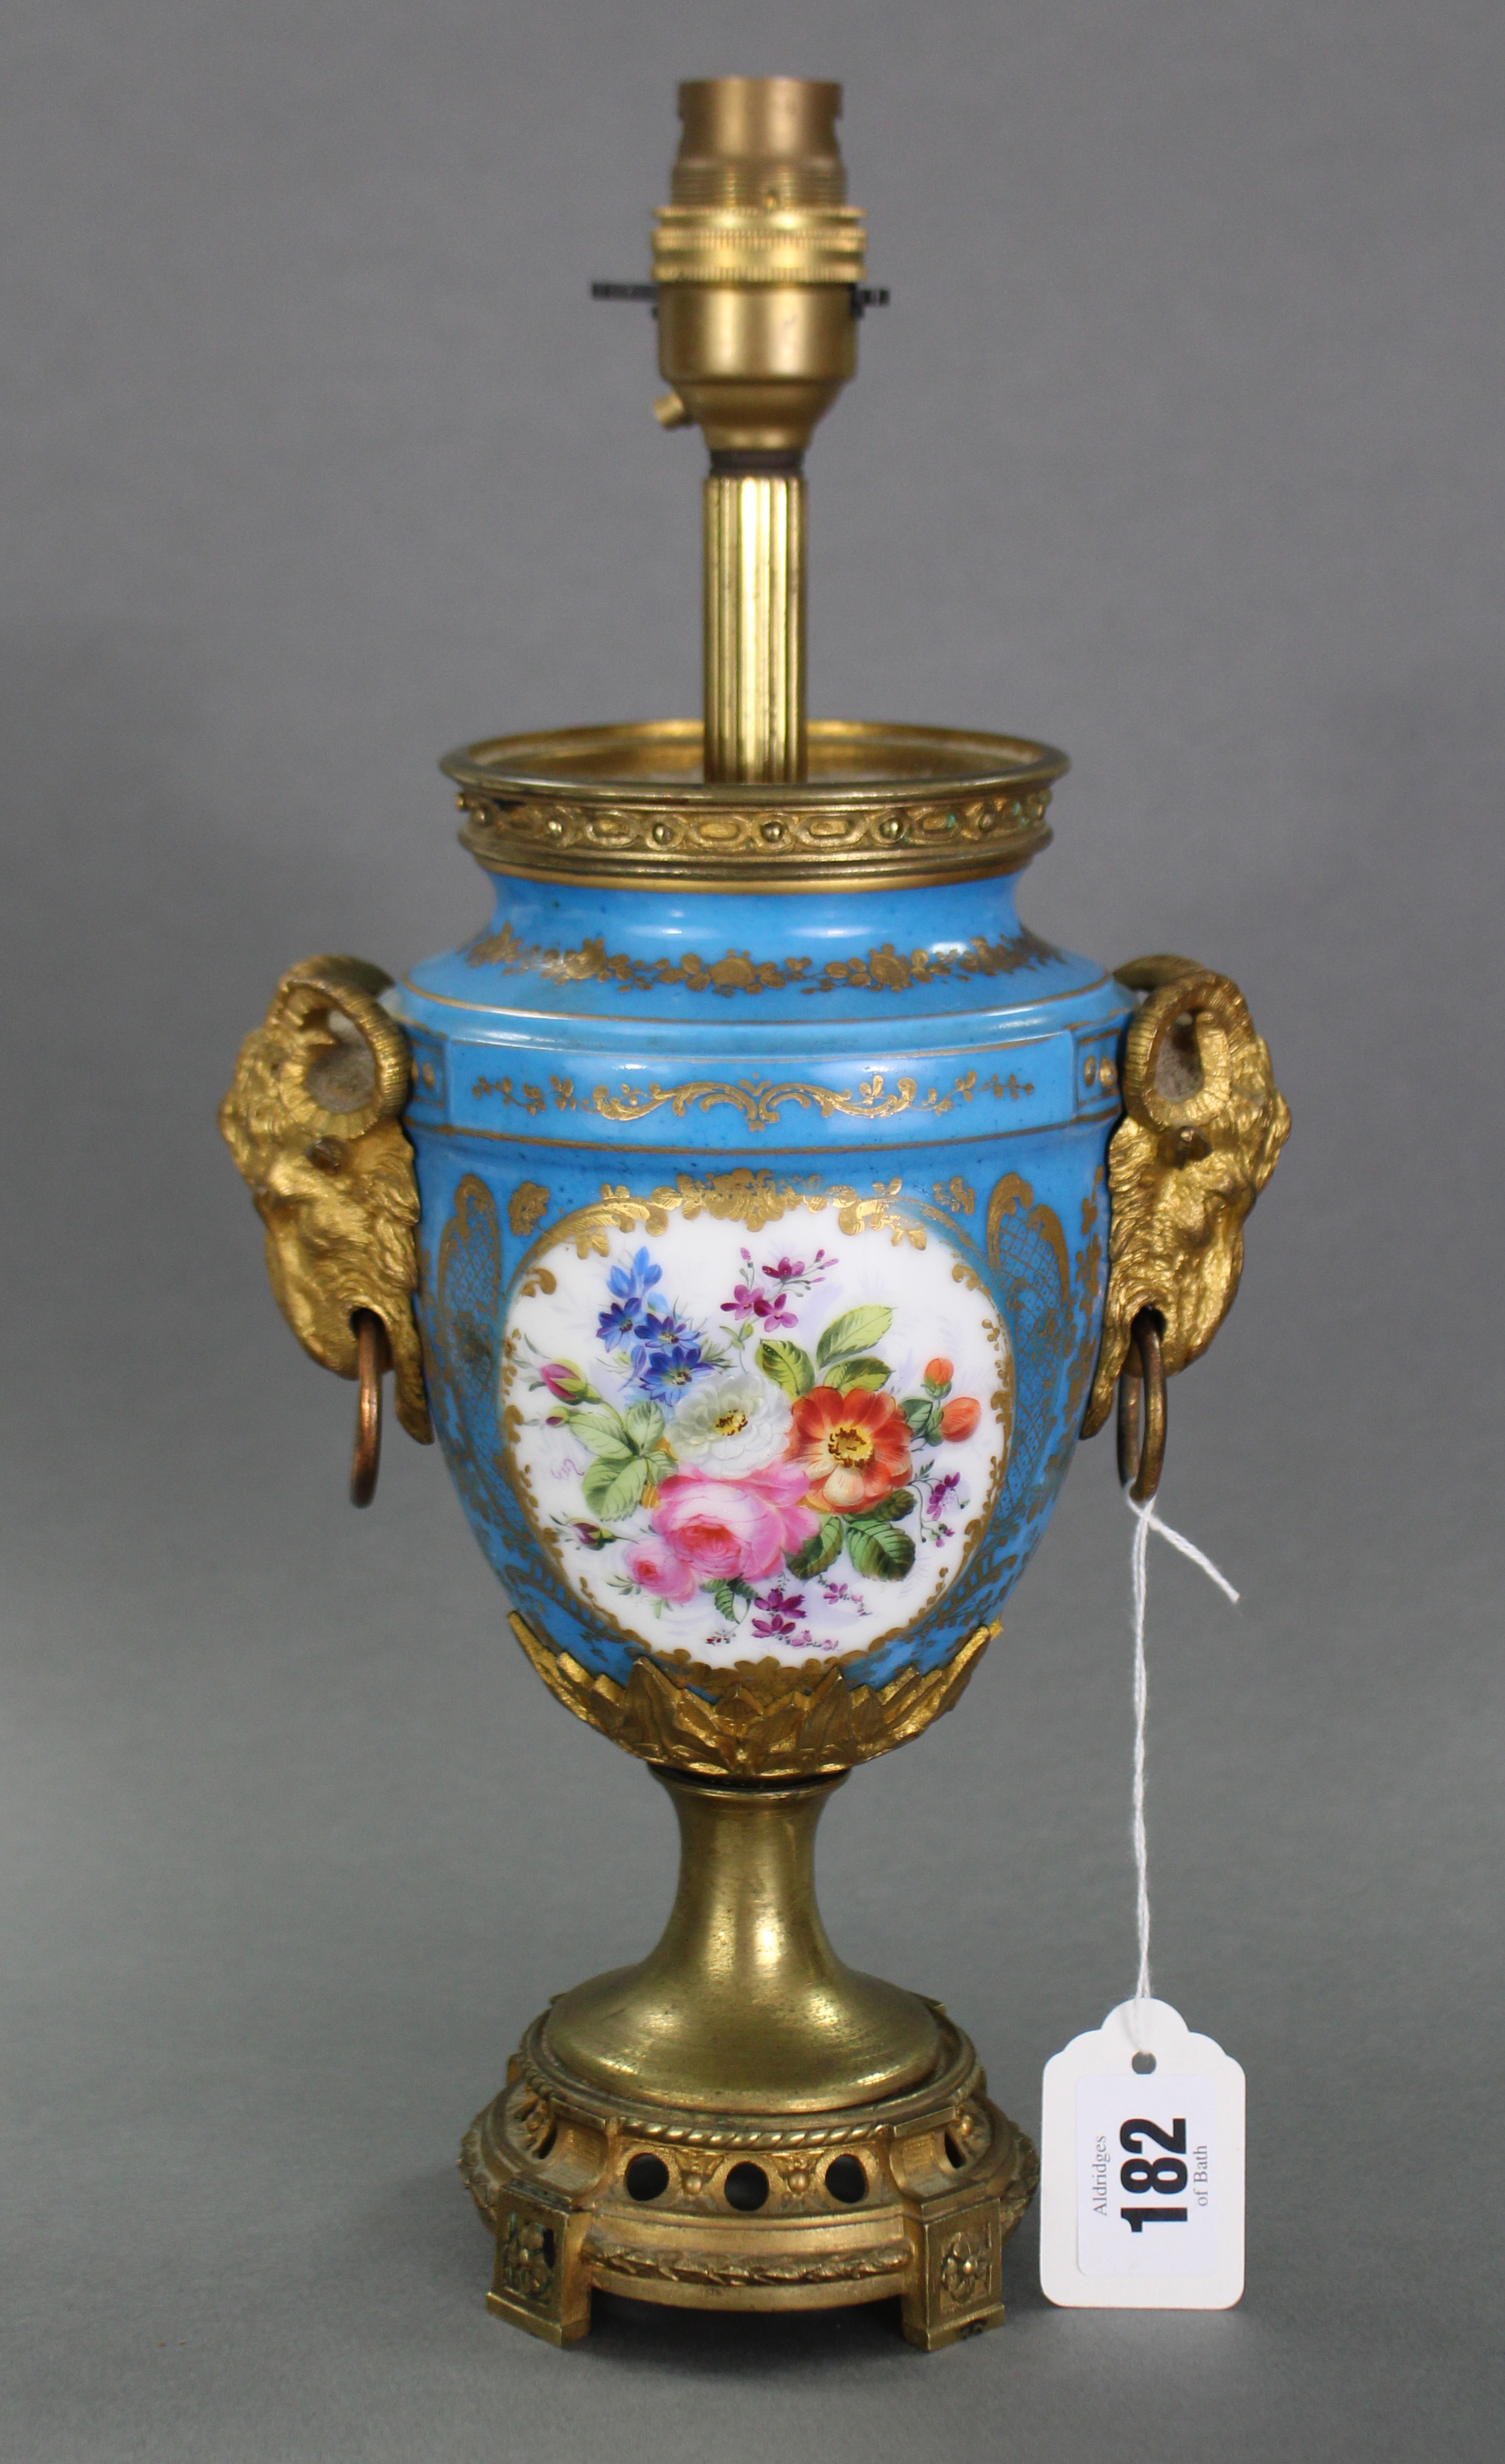 Lot 182 - A continental porcelain & gilt Ormolu ovoid table lamp with two hand painted panels with rams-head